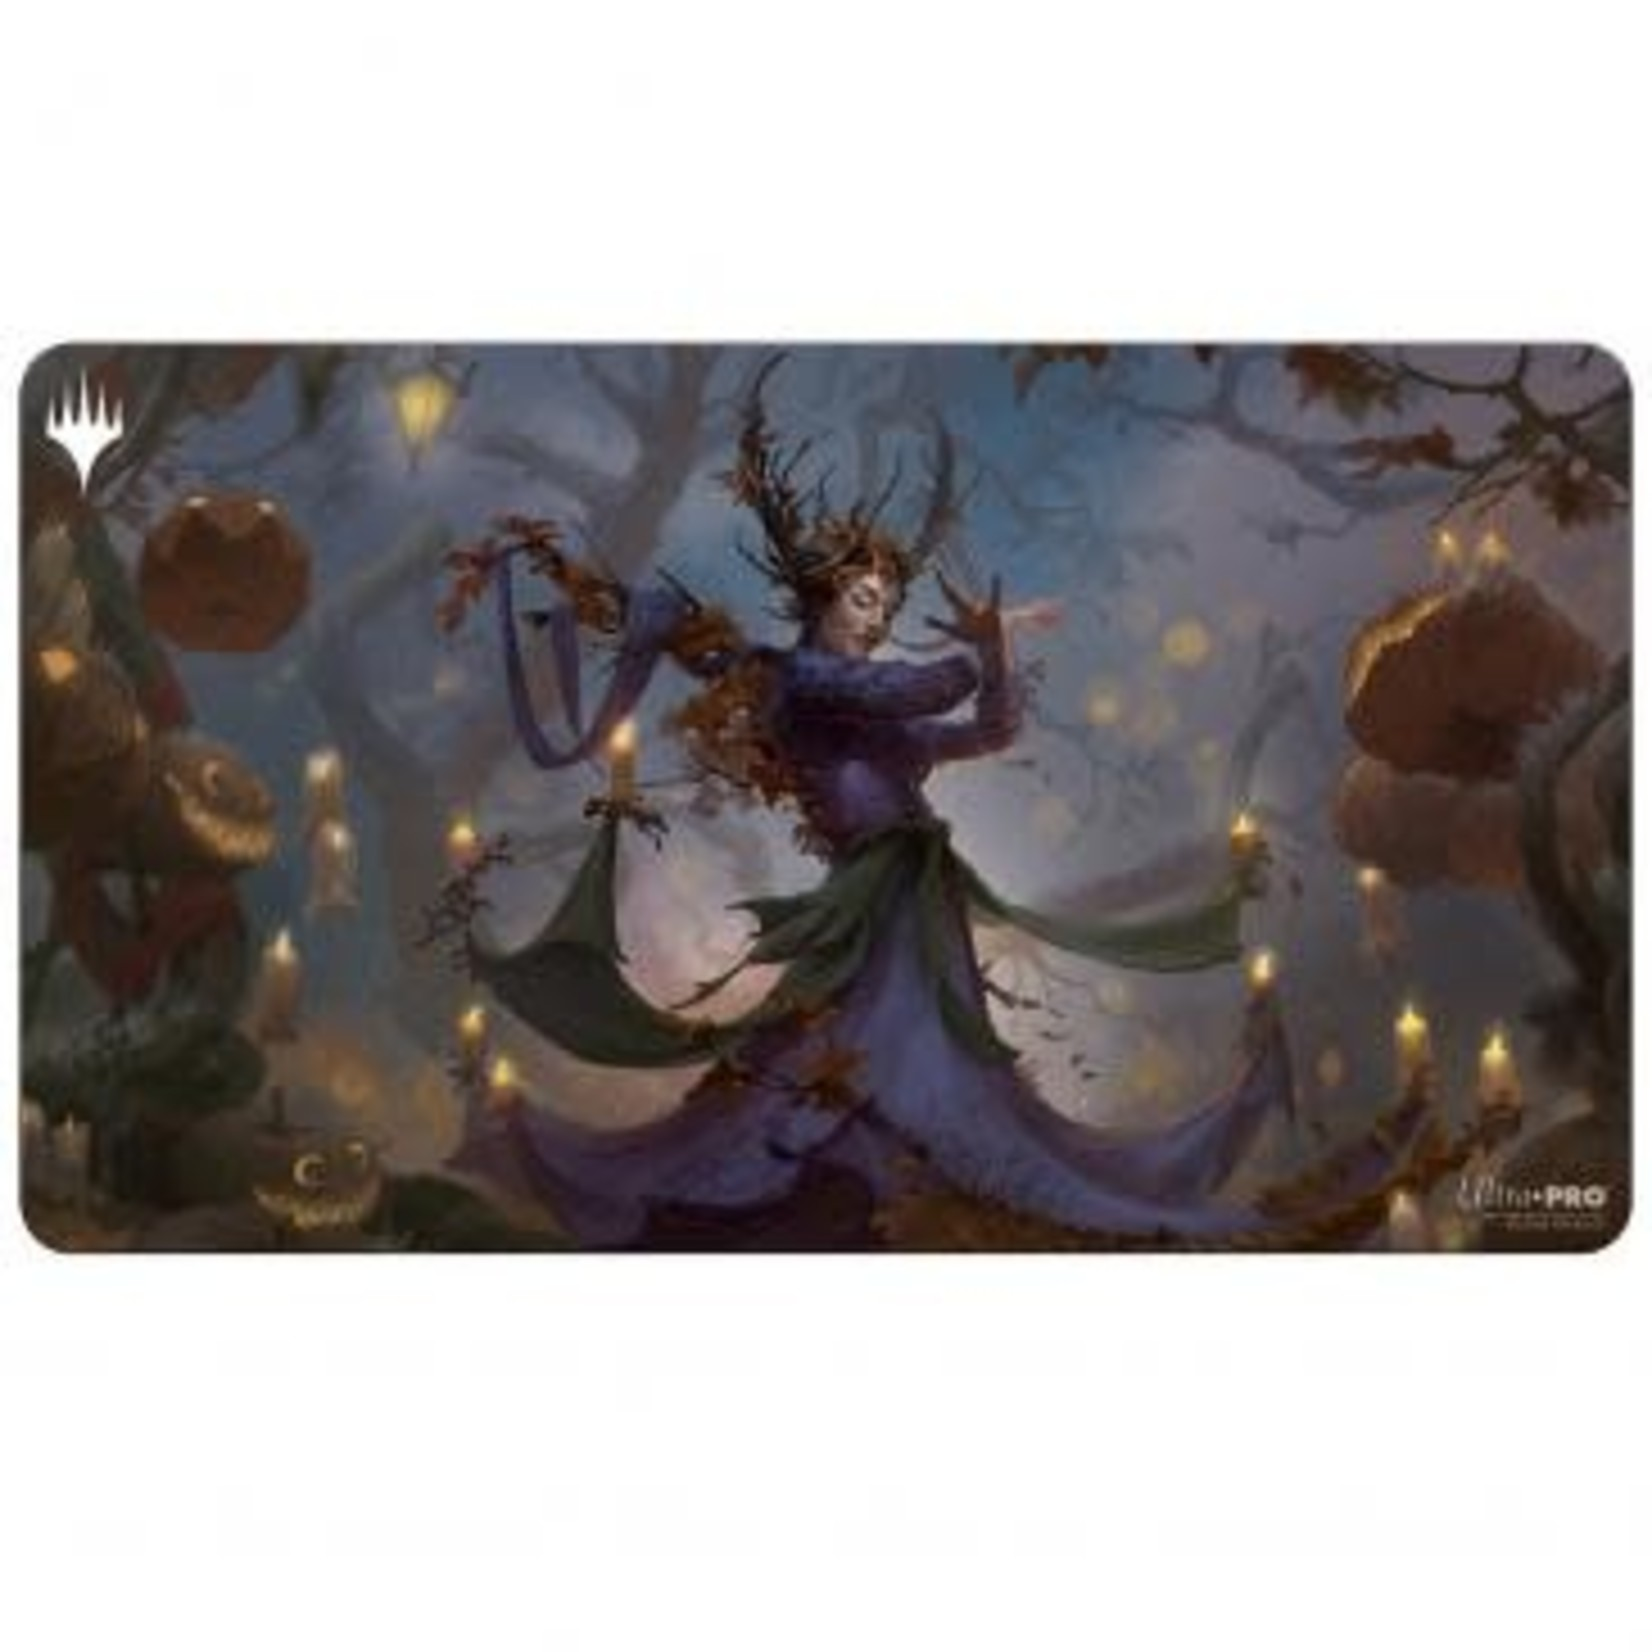 Ultra Pro Magic: The Gathering - Innistrad: Midnight Hunt Playmat Commander V2 featuring Leinore, Autumn Sovereign